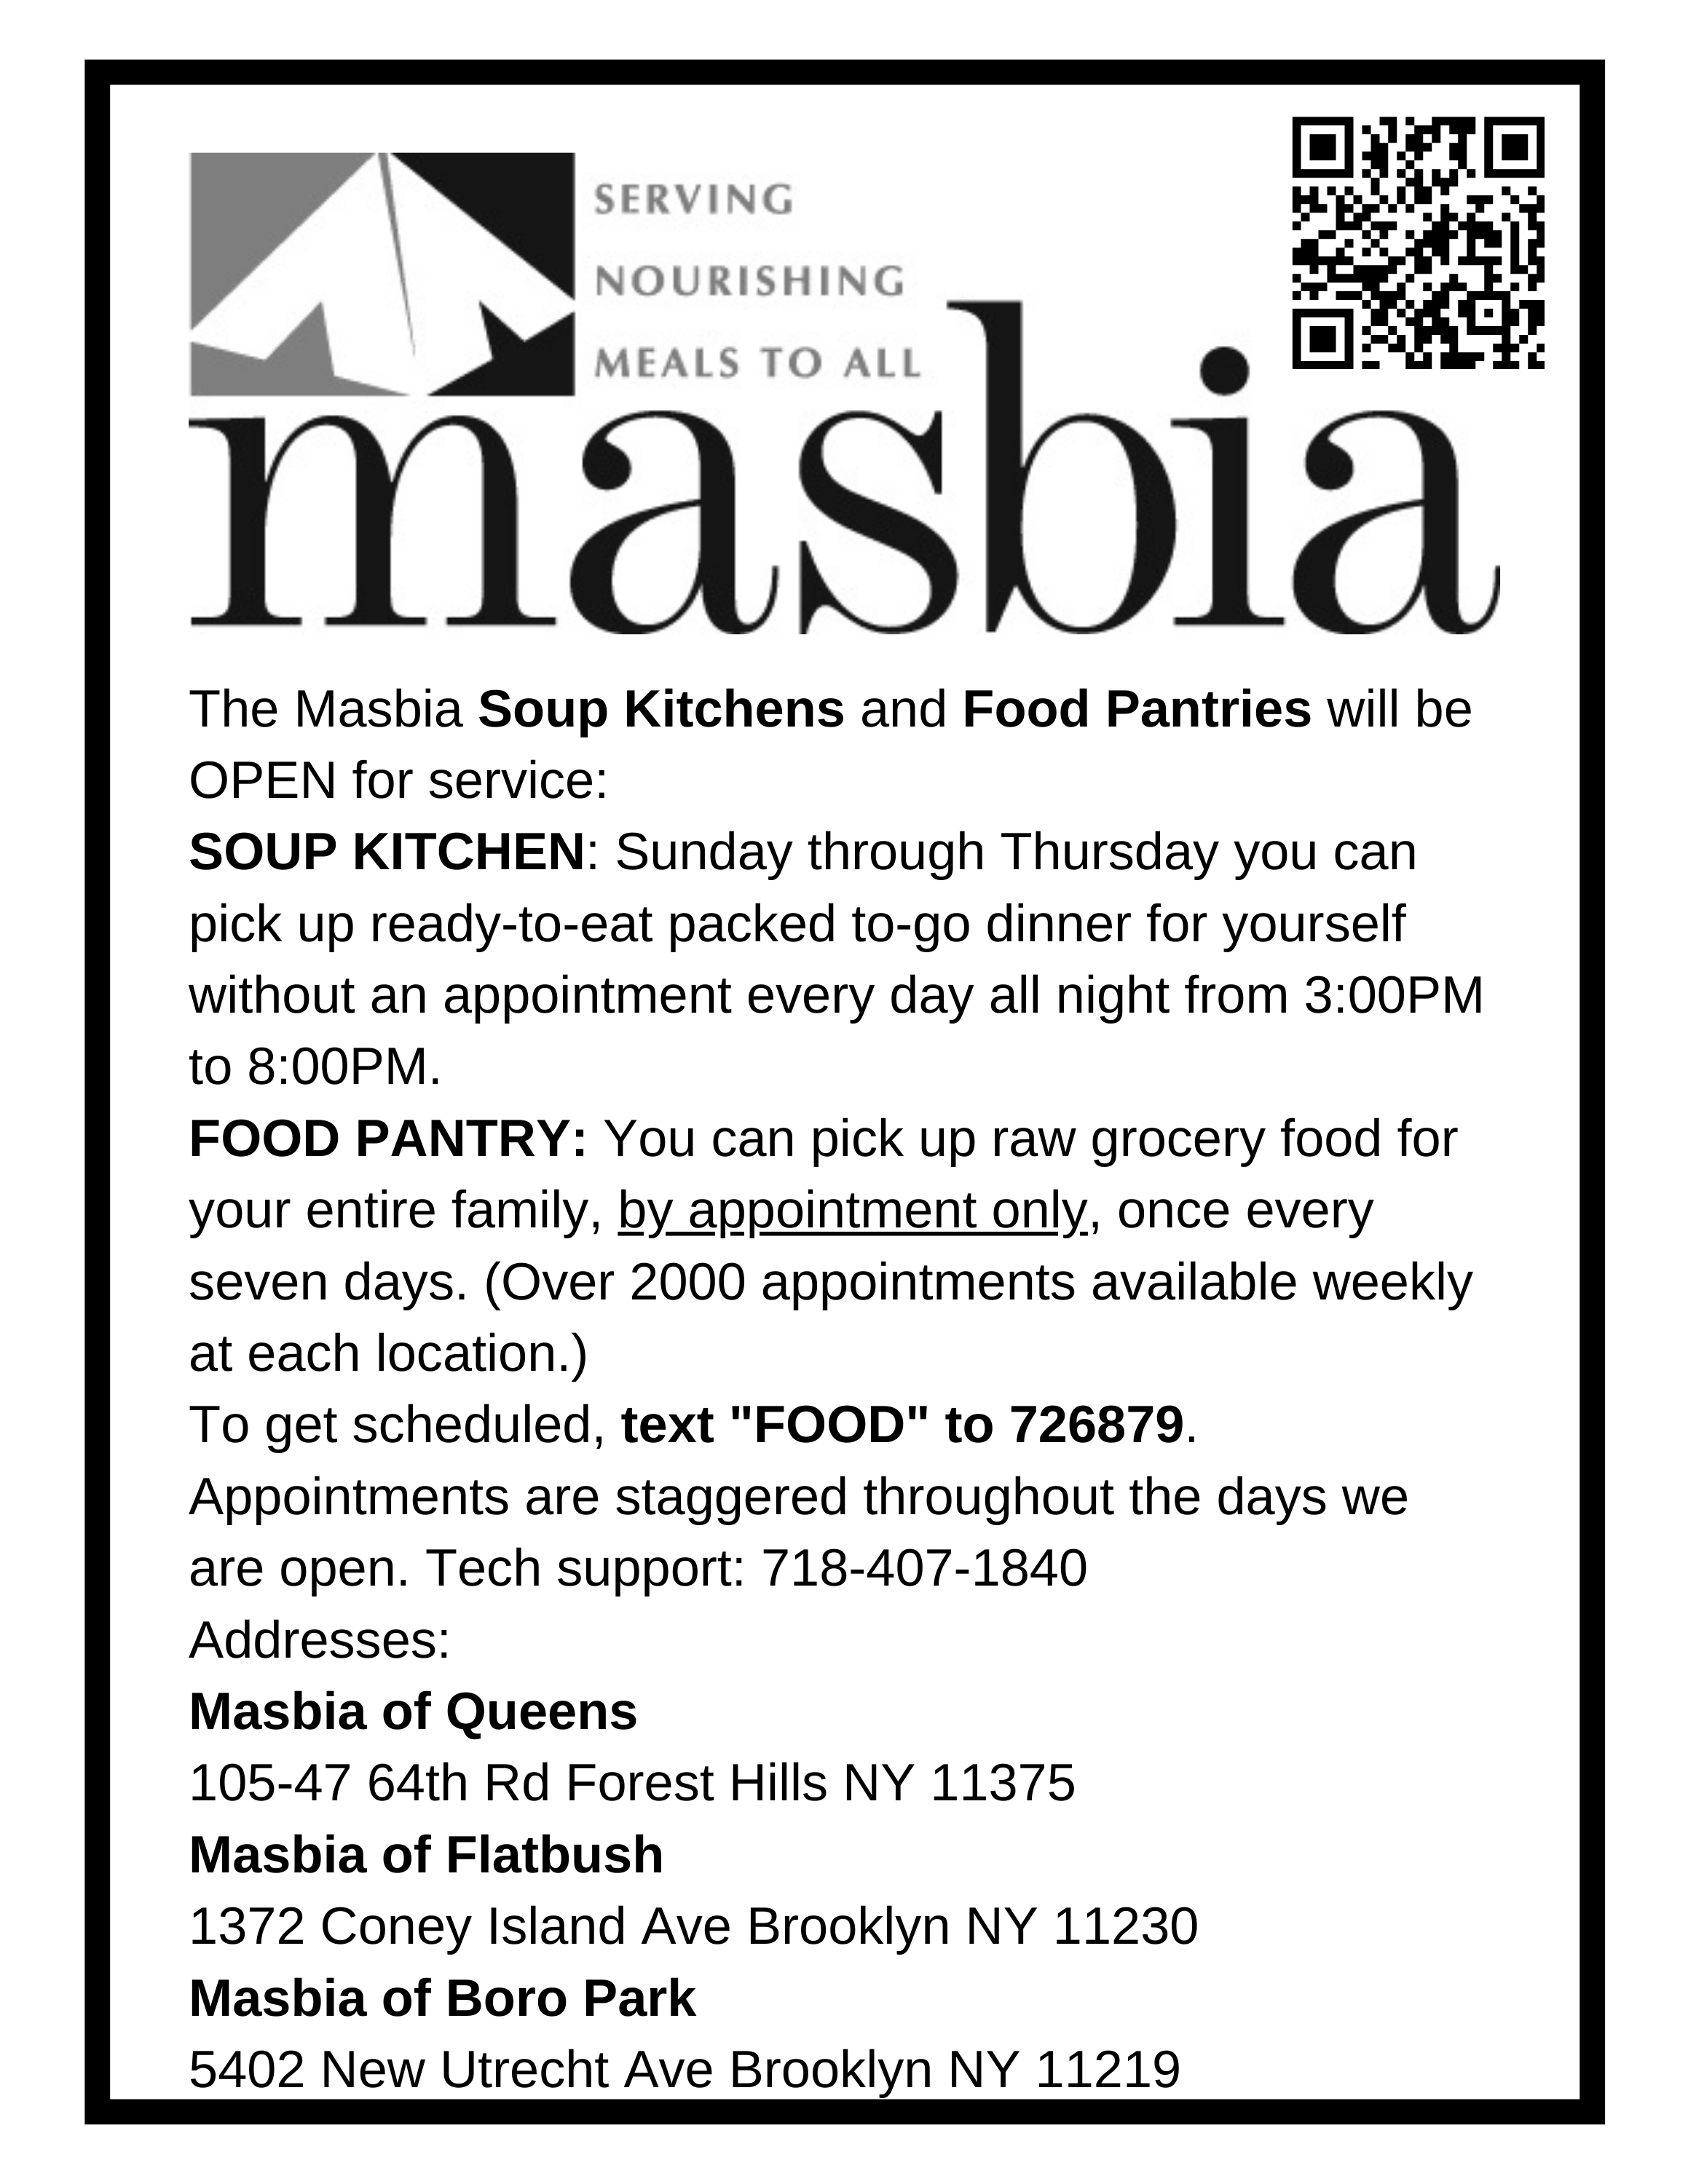 Masbia Soup Kitchens and Food Pantries hours